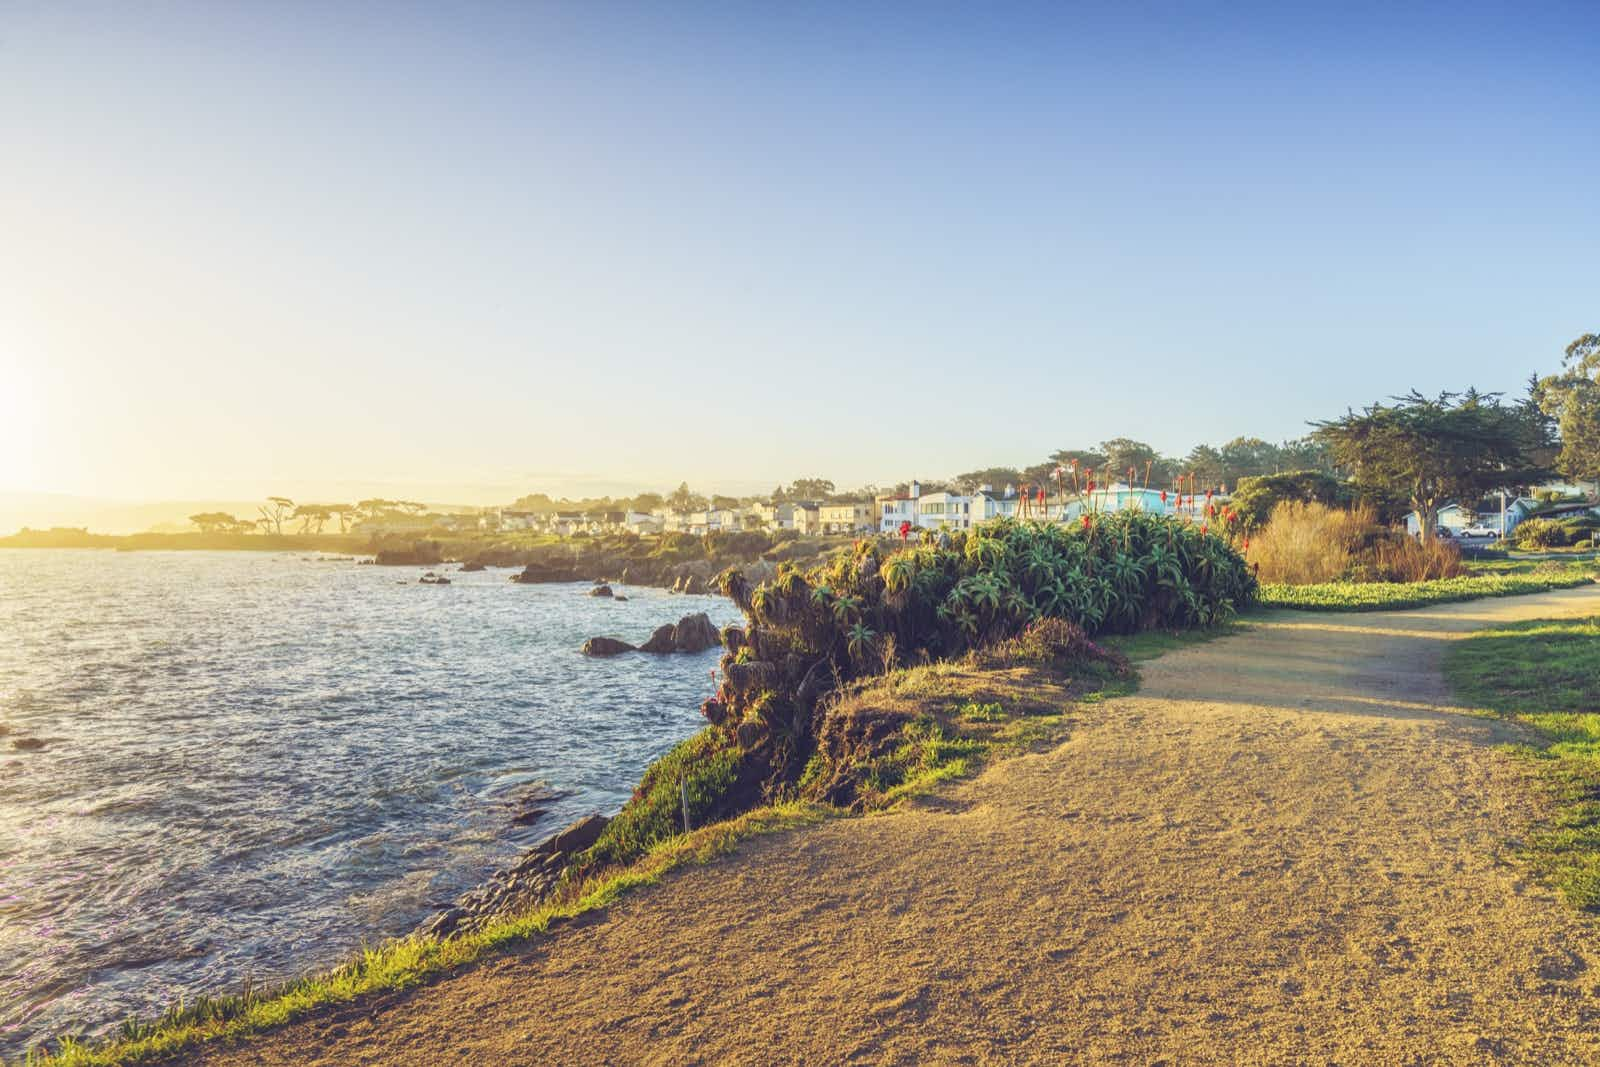 a sandy path leads past a rocky shoreline lined with wild fauna with stately homes in the background in Monterey, California